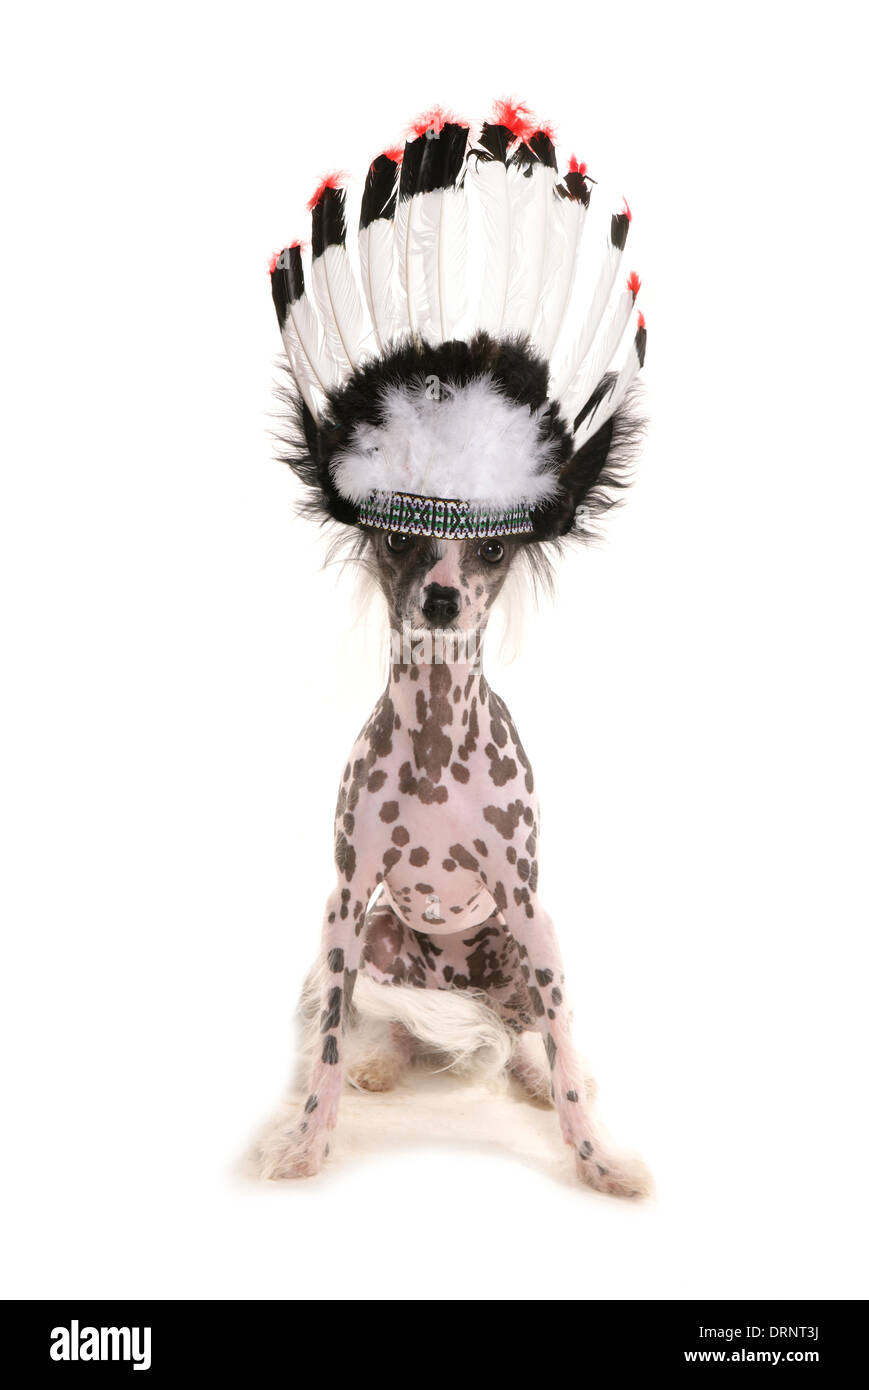 Chinese crested dog wearing a chief headdress - Stock Image